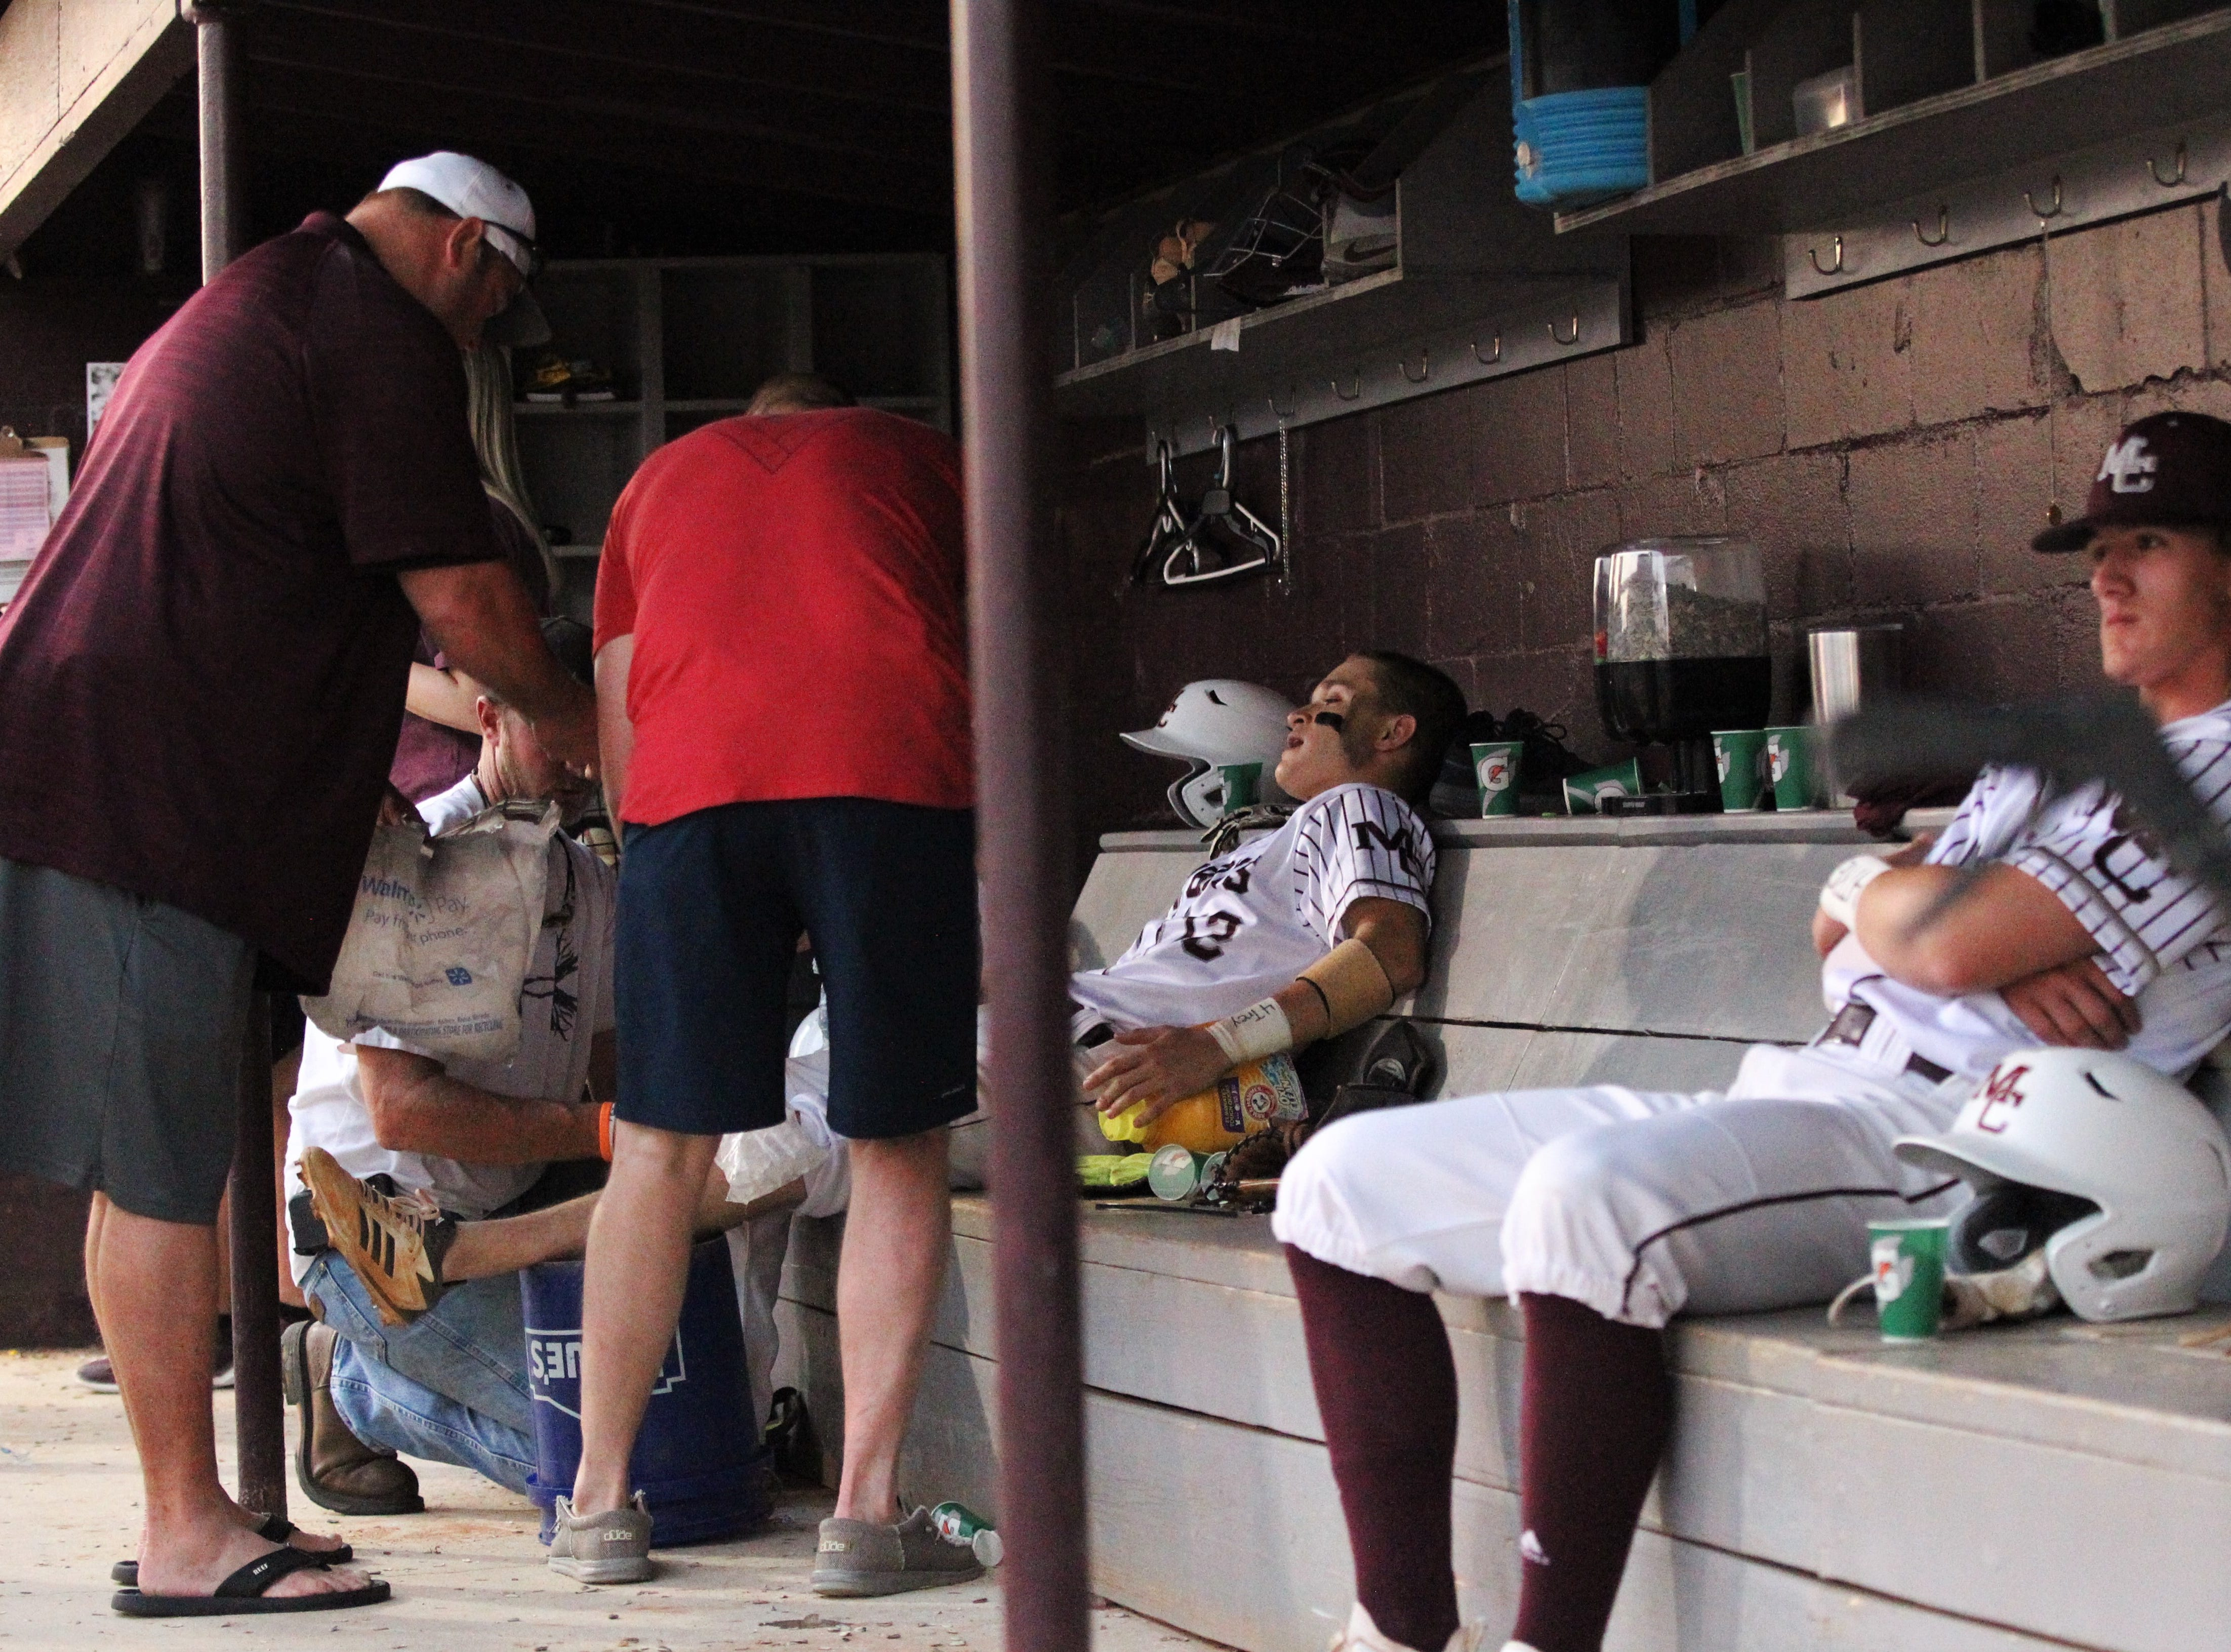 Madison County catcher Logan Lepper gets treatment on an injured knee as the Cowboys beat Union County 1-0 during a Region 2-1A semifinal on May 14, 2019.